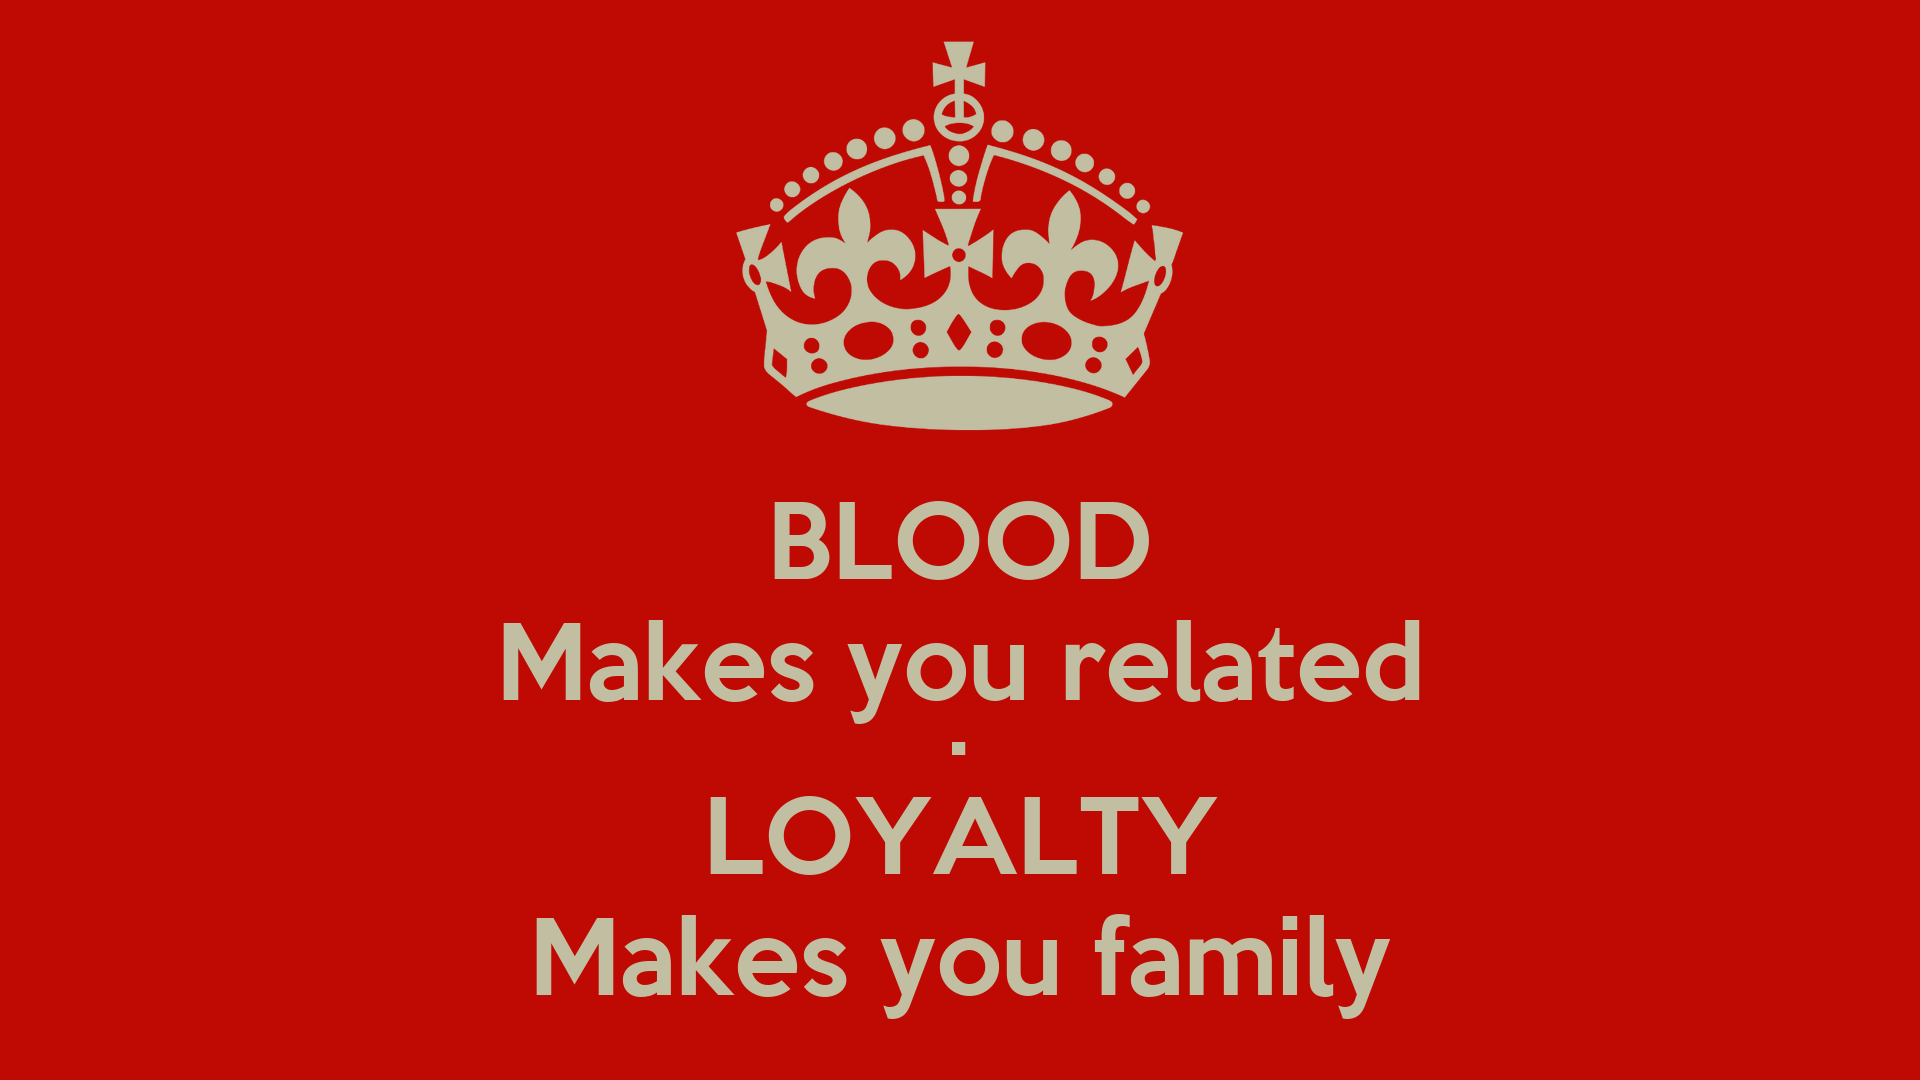 BLOOD Makes You Related • LOYALTY Makes You Family Poster